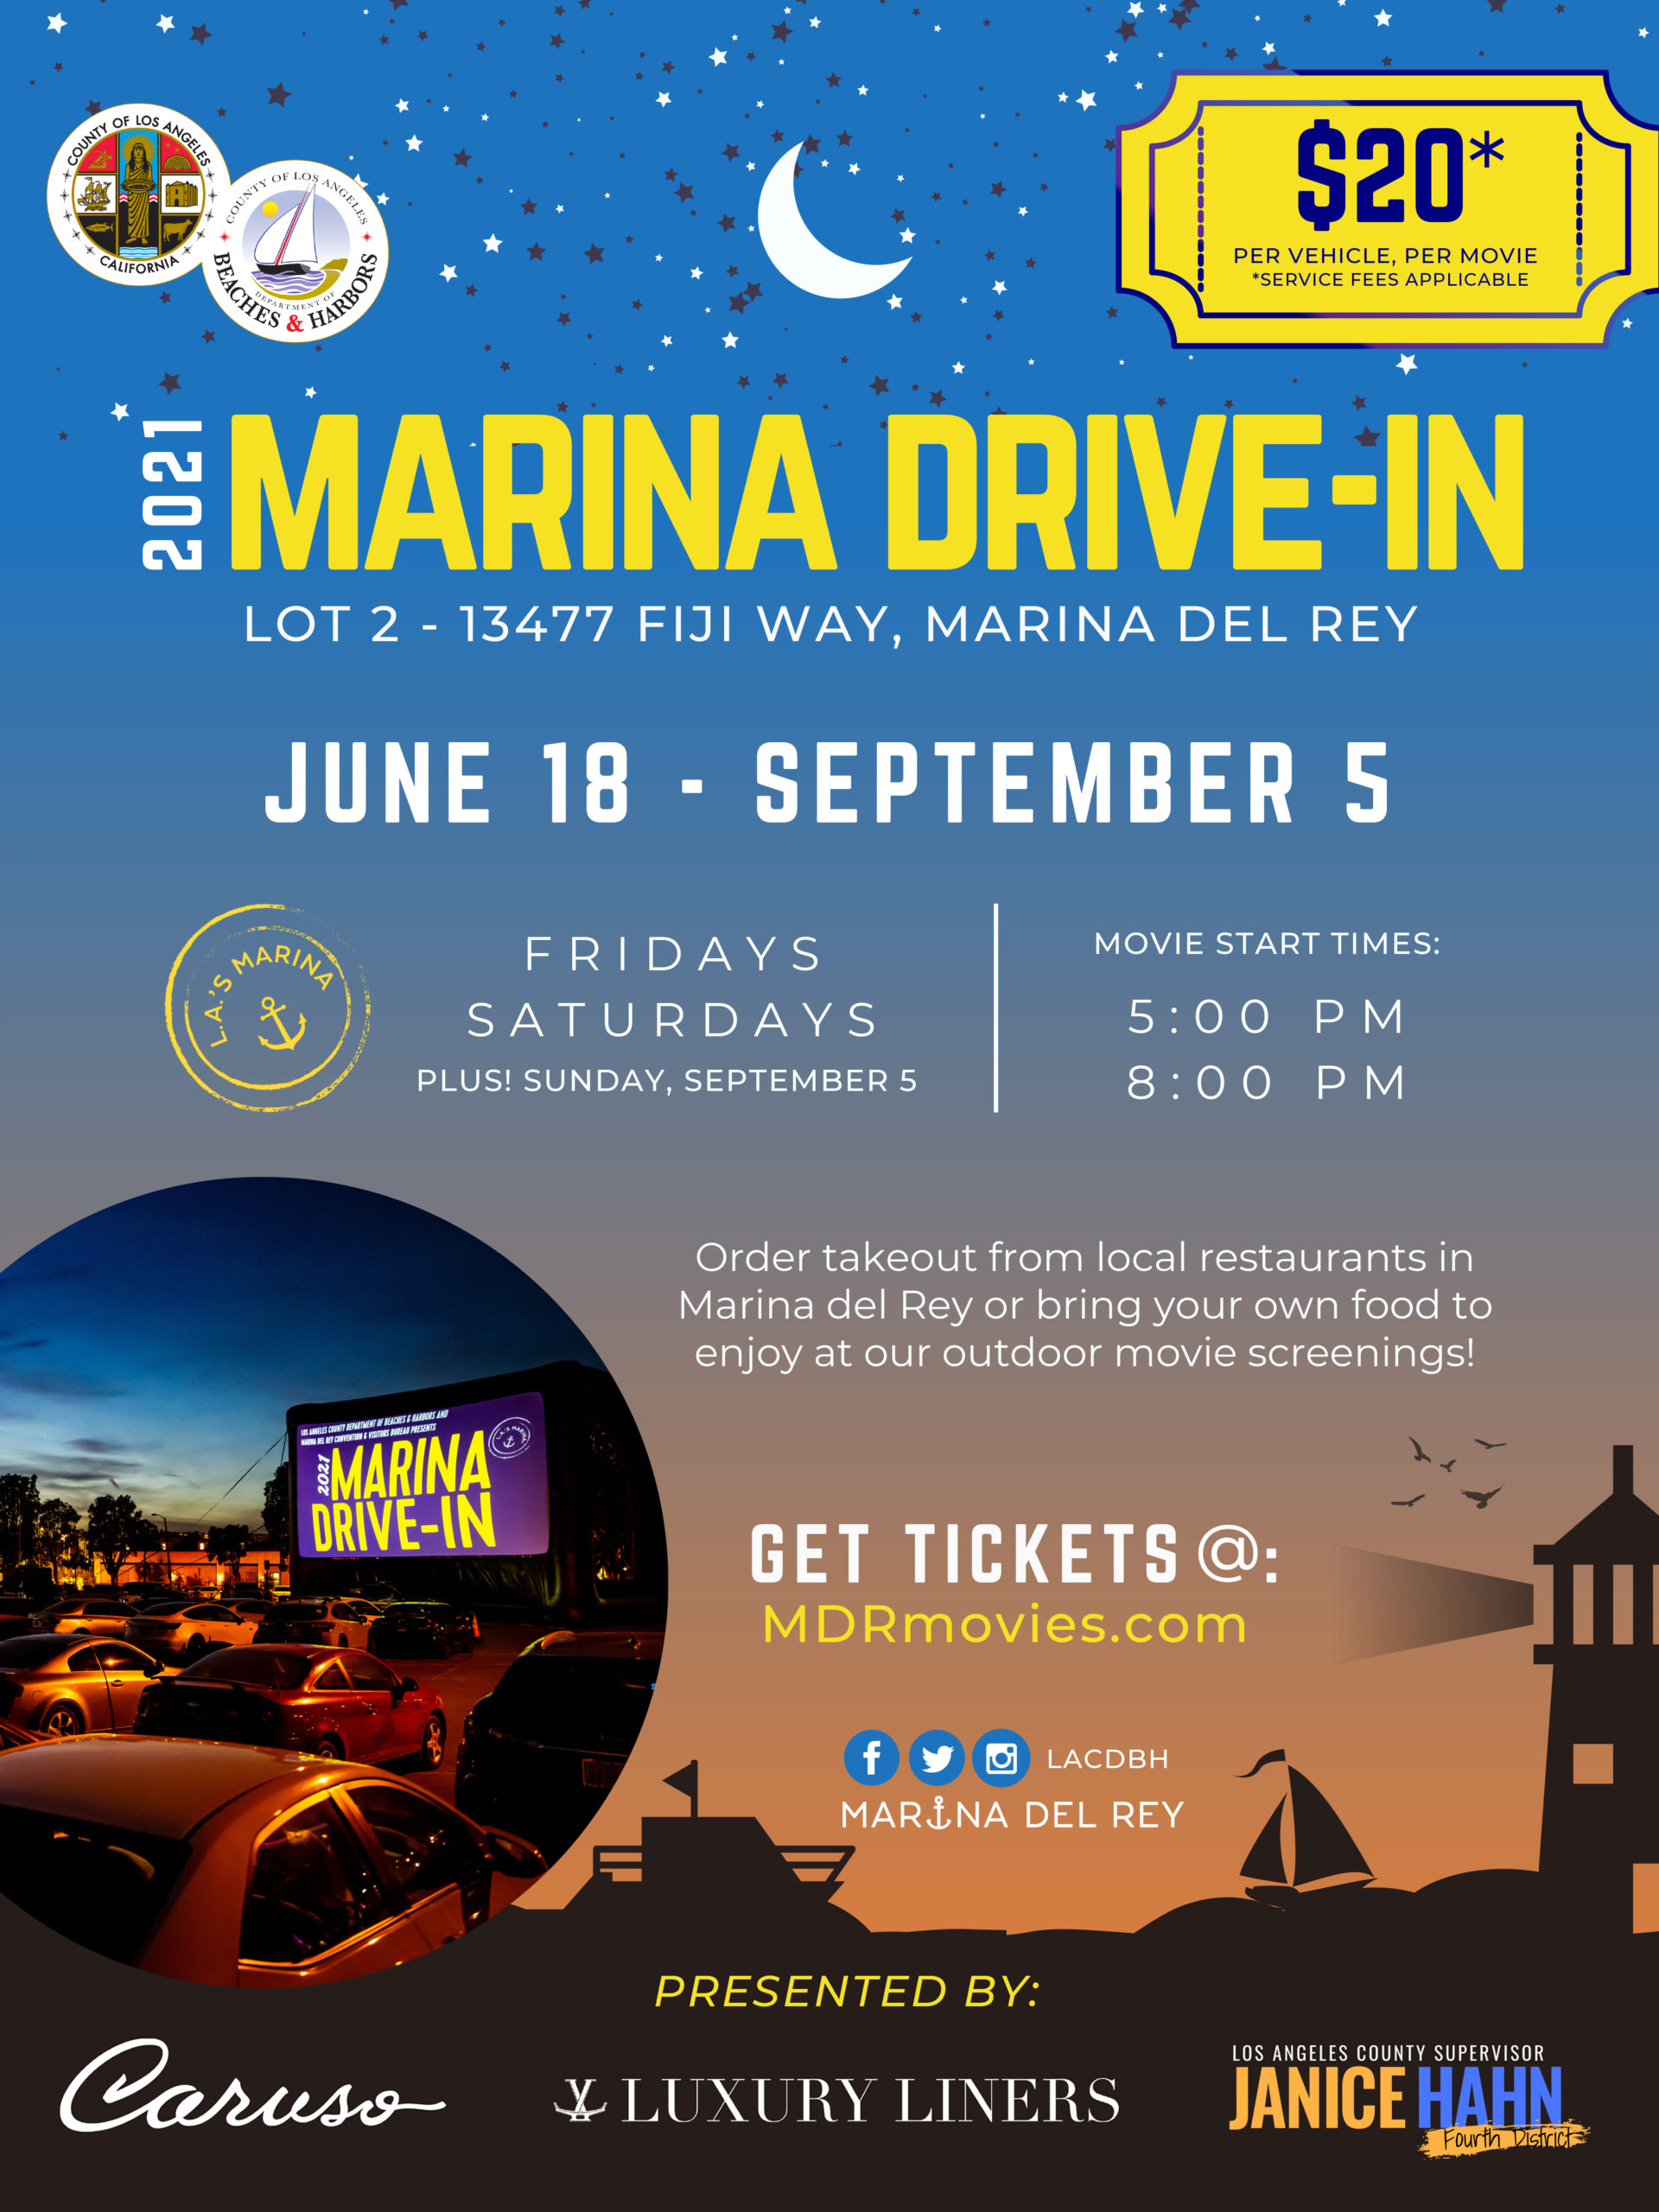 Updated Marina Drive-In Flyer